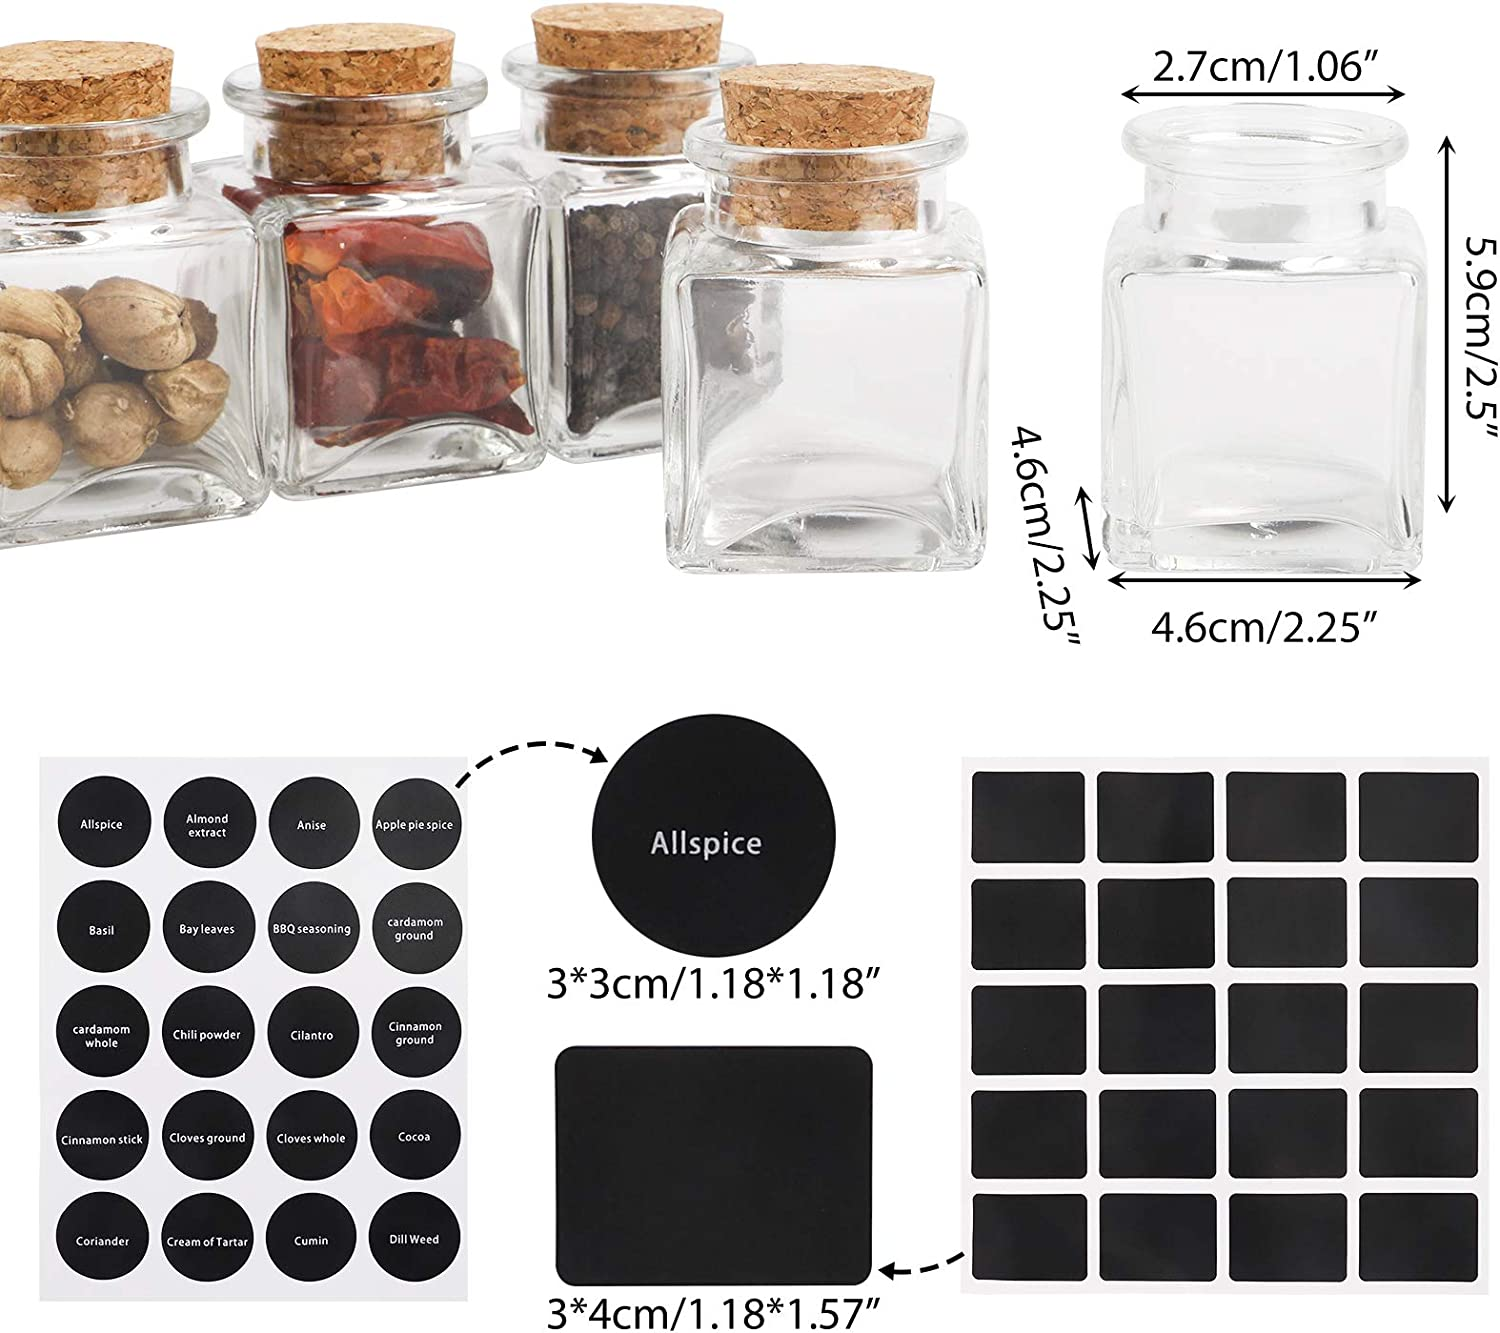 2oz Reusable Spice Bottles Glass Containers with Cork 1pcs Test Tube Brush for Storing Tea Herbs and Spices CUCUMI 24pcs 60ml Glass Spice Jars Chalk Marker 120pcs Waterproof Preprinted Stickers